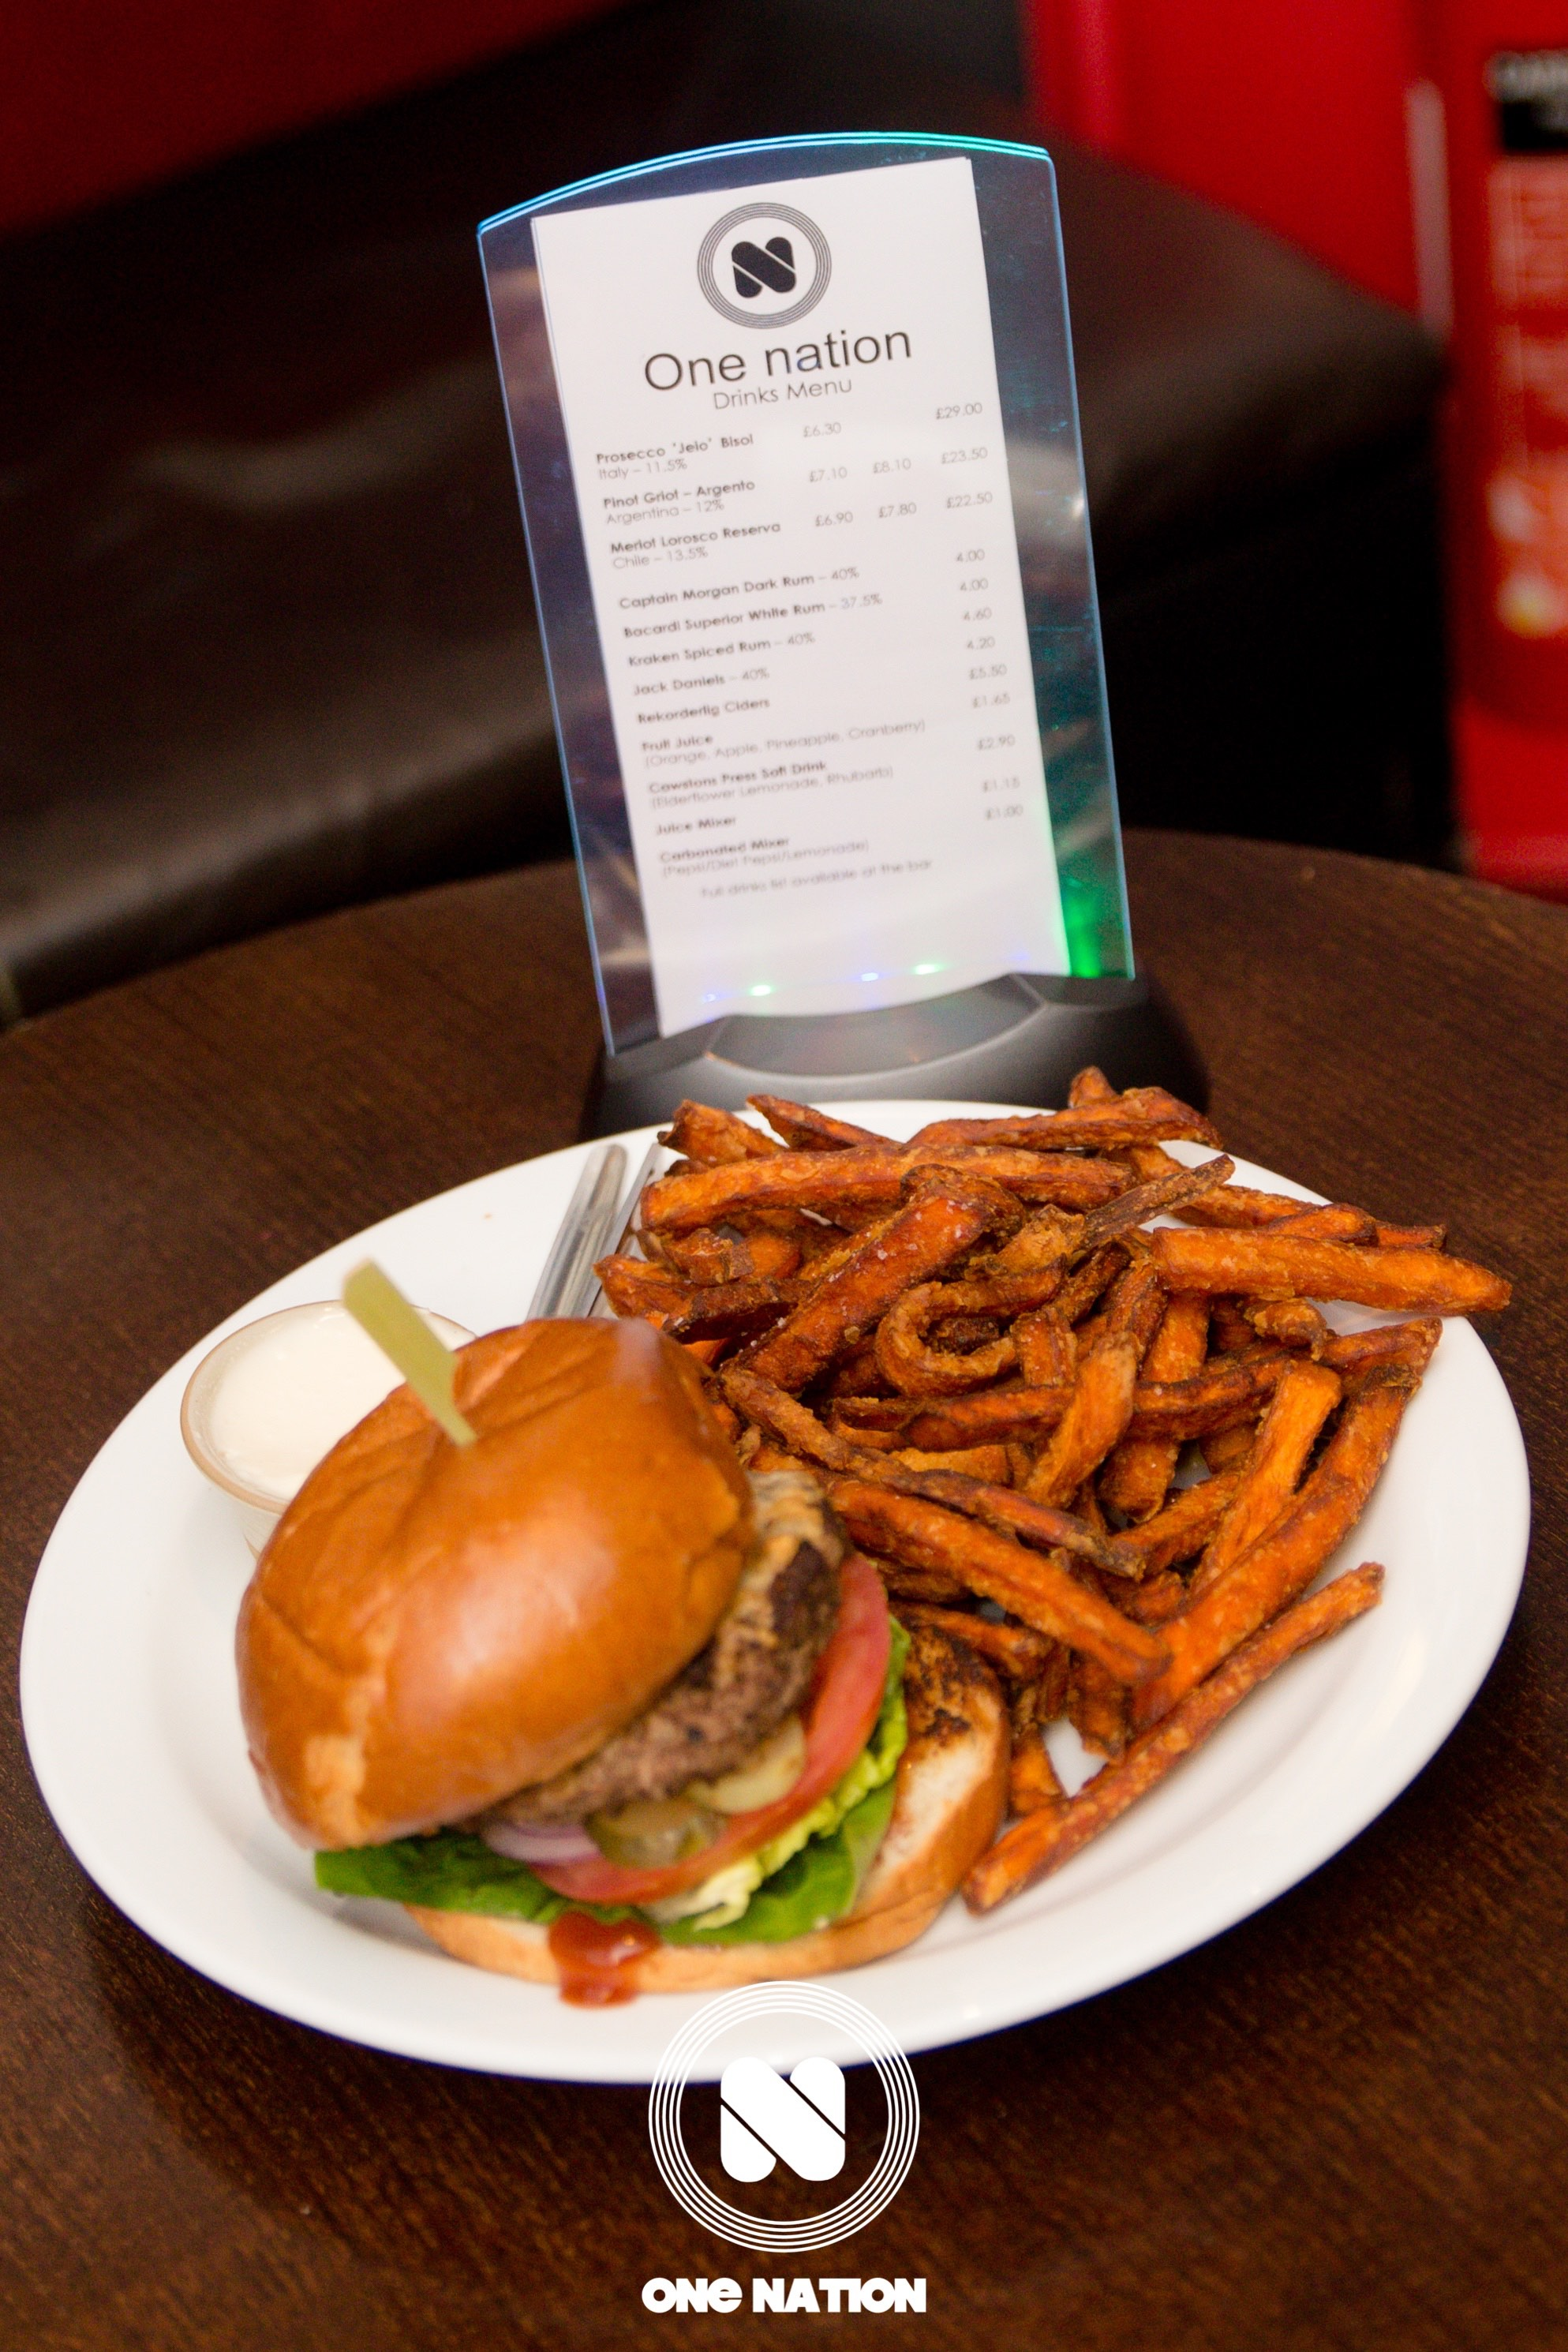 Great food and drinks available at One Nation, Upstairs at the Ritzy, Brixton